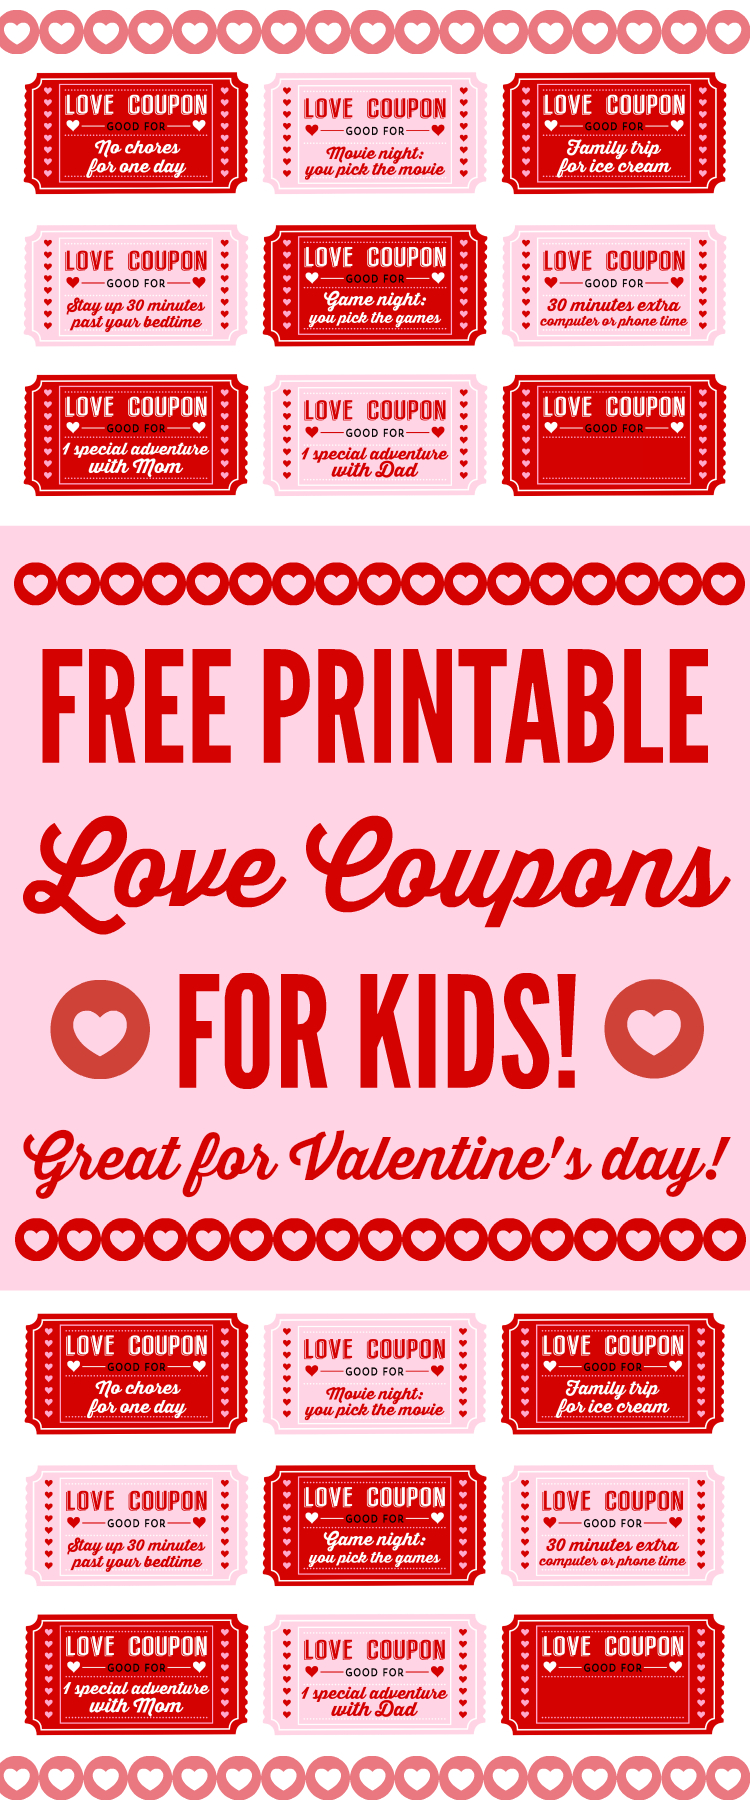 Free Printable Love Coupons For Couples On Valentine's Day! | Catch - Free Printable Coupons Without Downloads